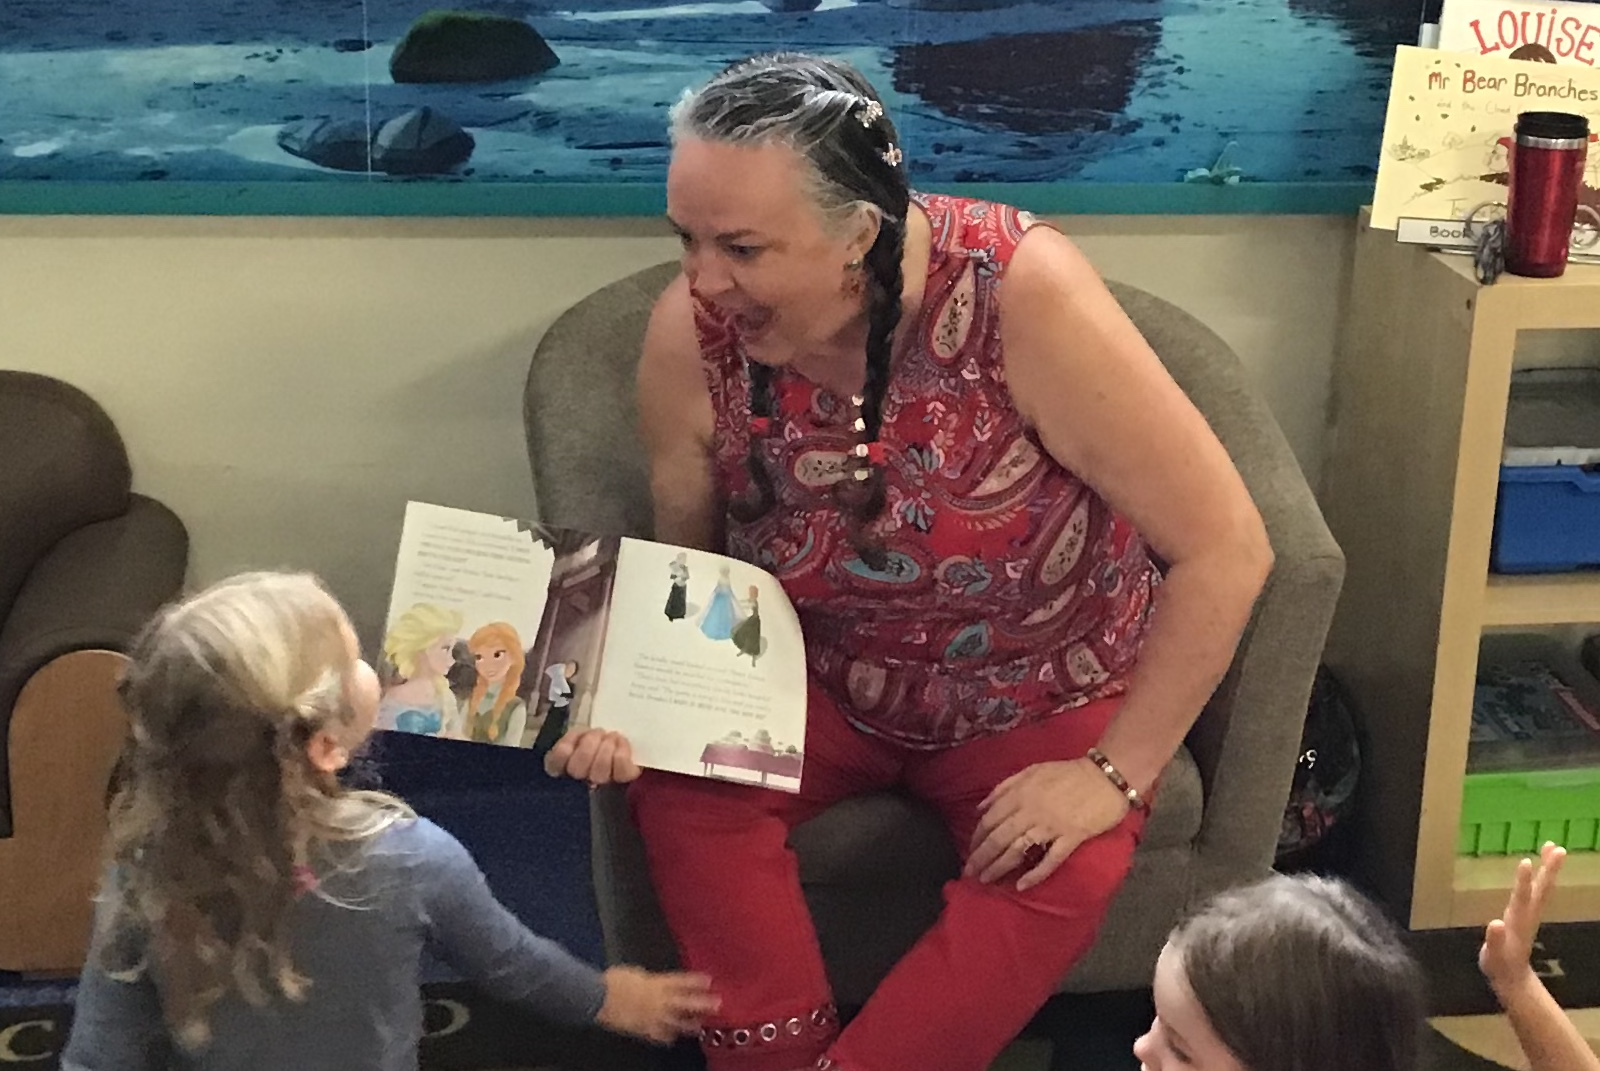 Mama Sa reading in red top